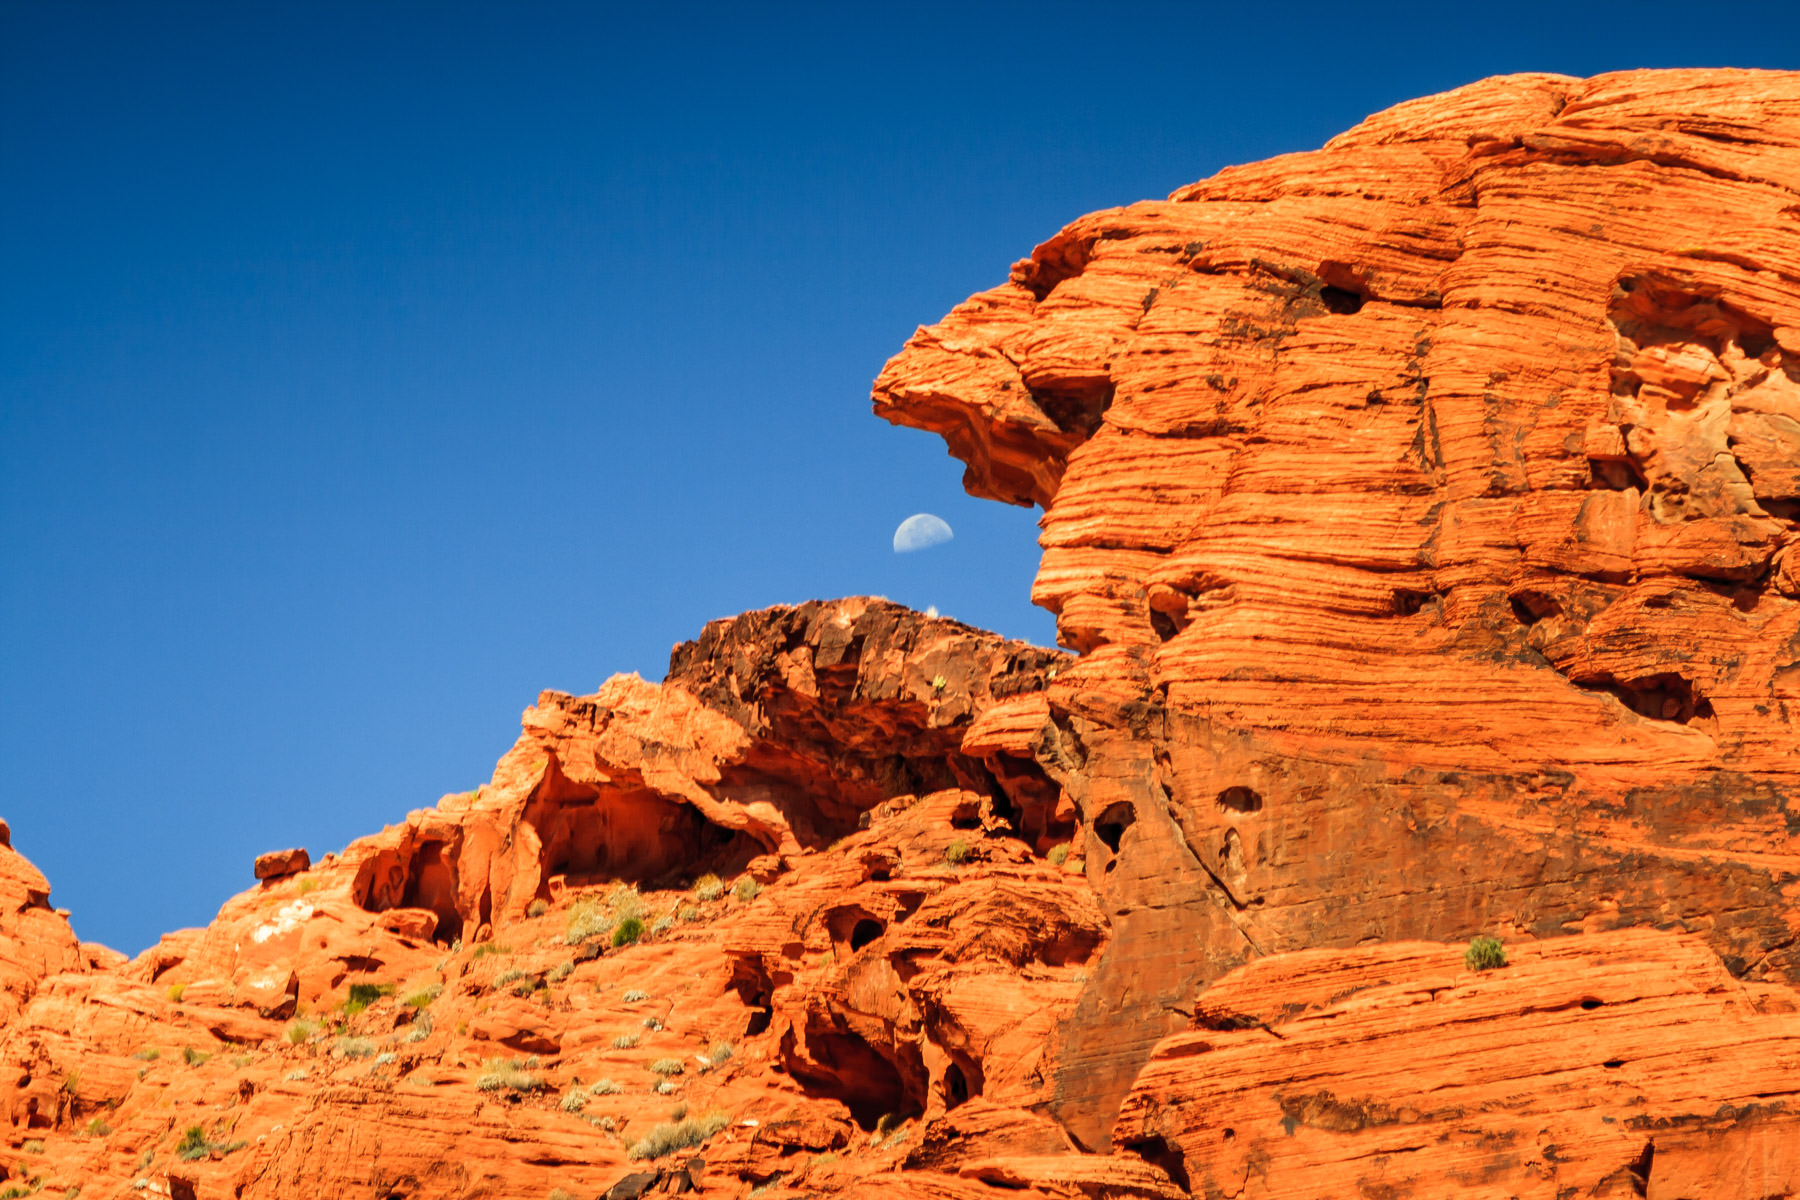 Rock monoliths seem to be ready to eat the moon at the Valley of Fire, Nevada.